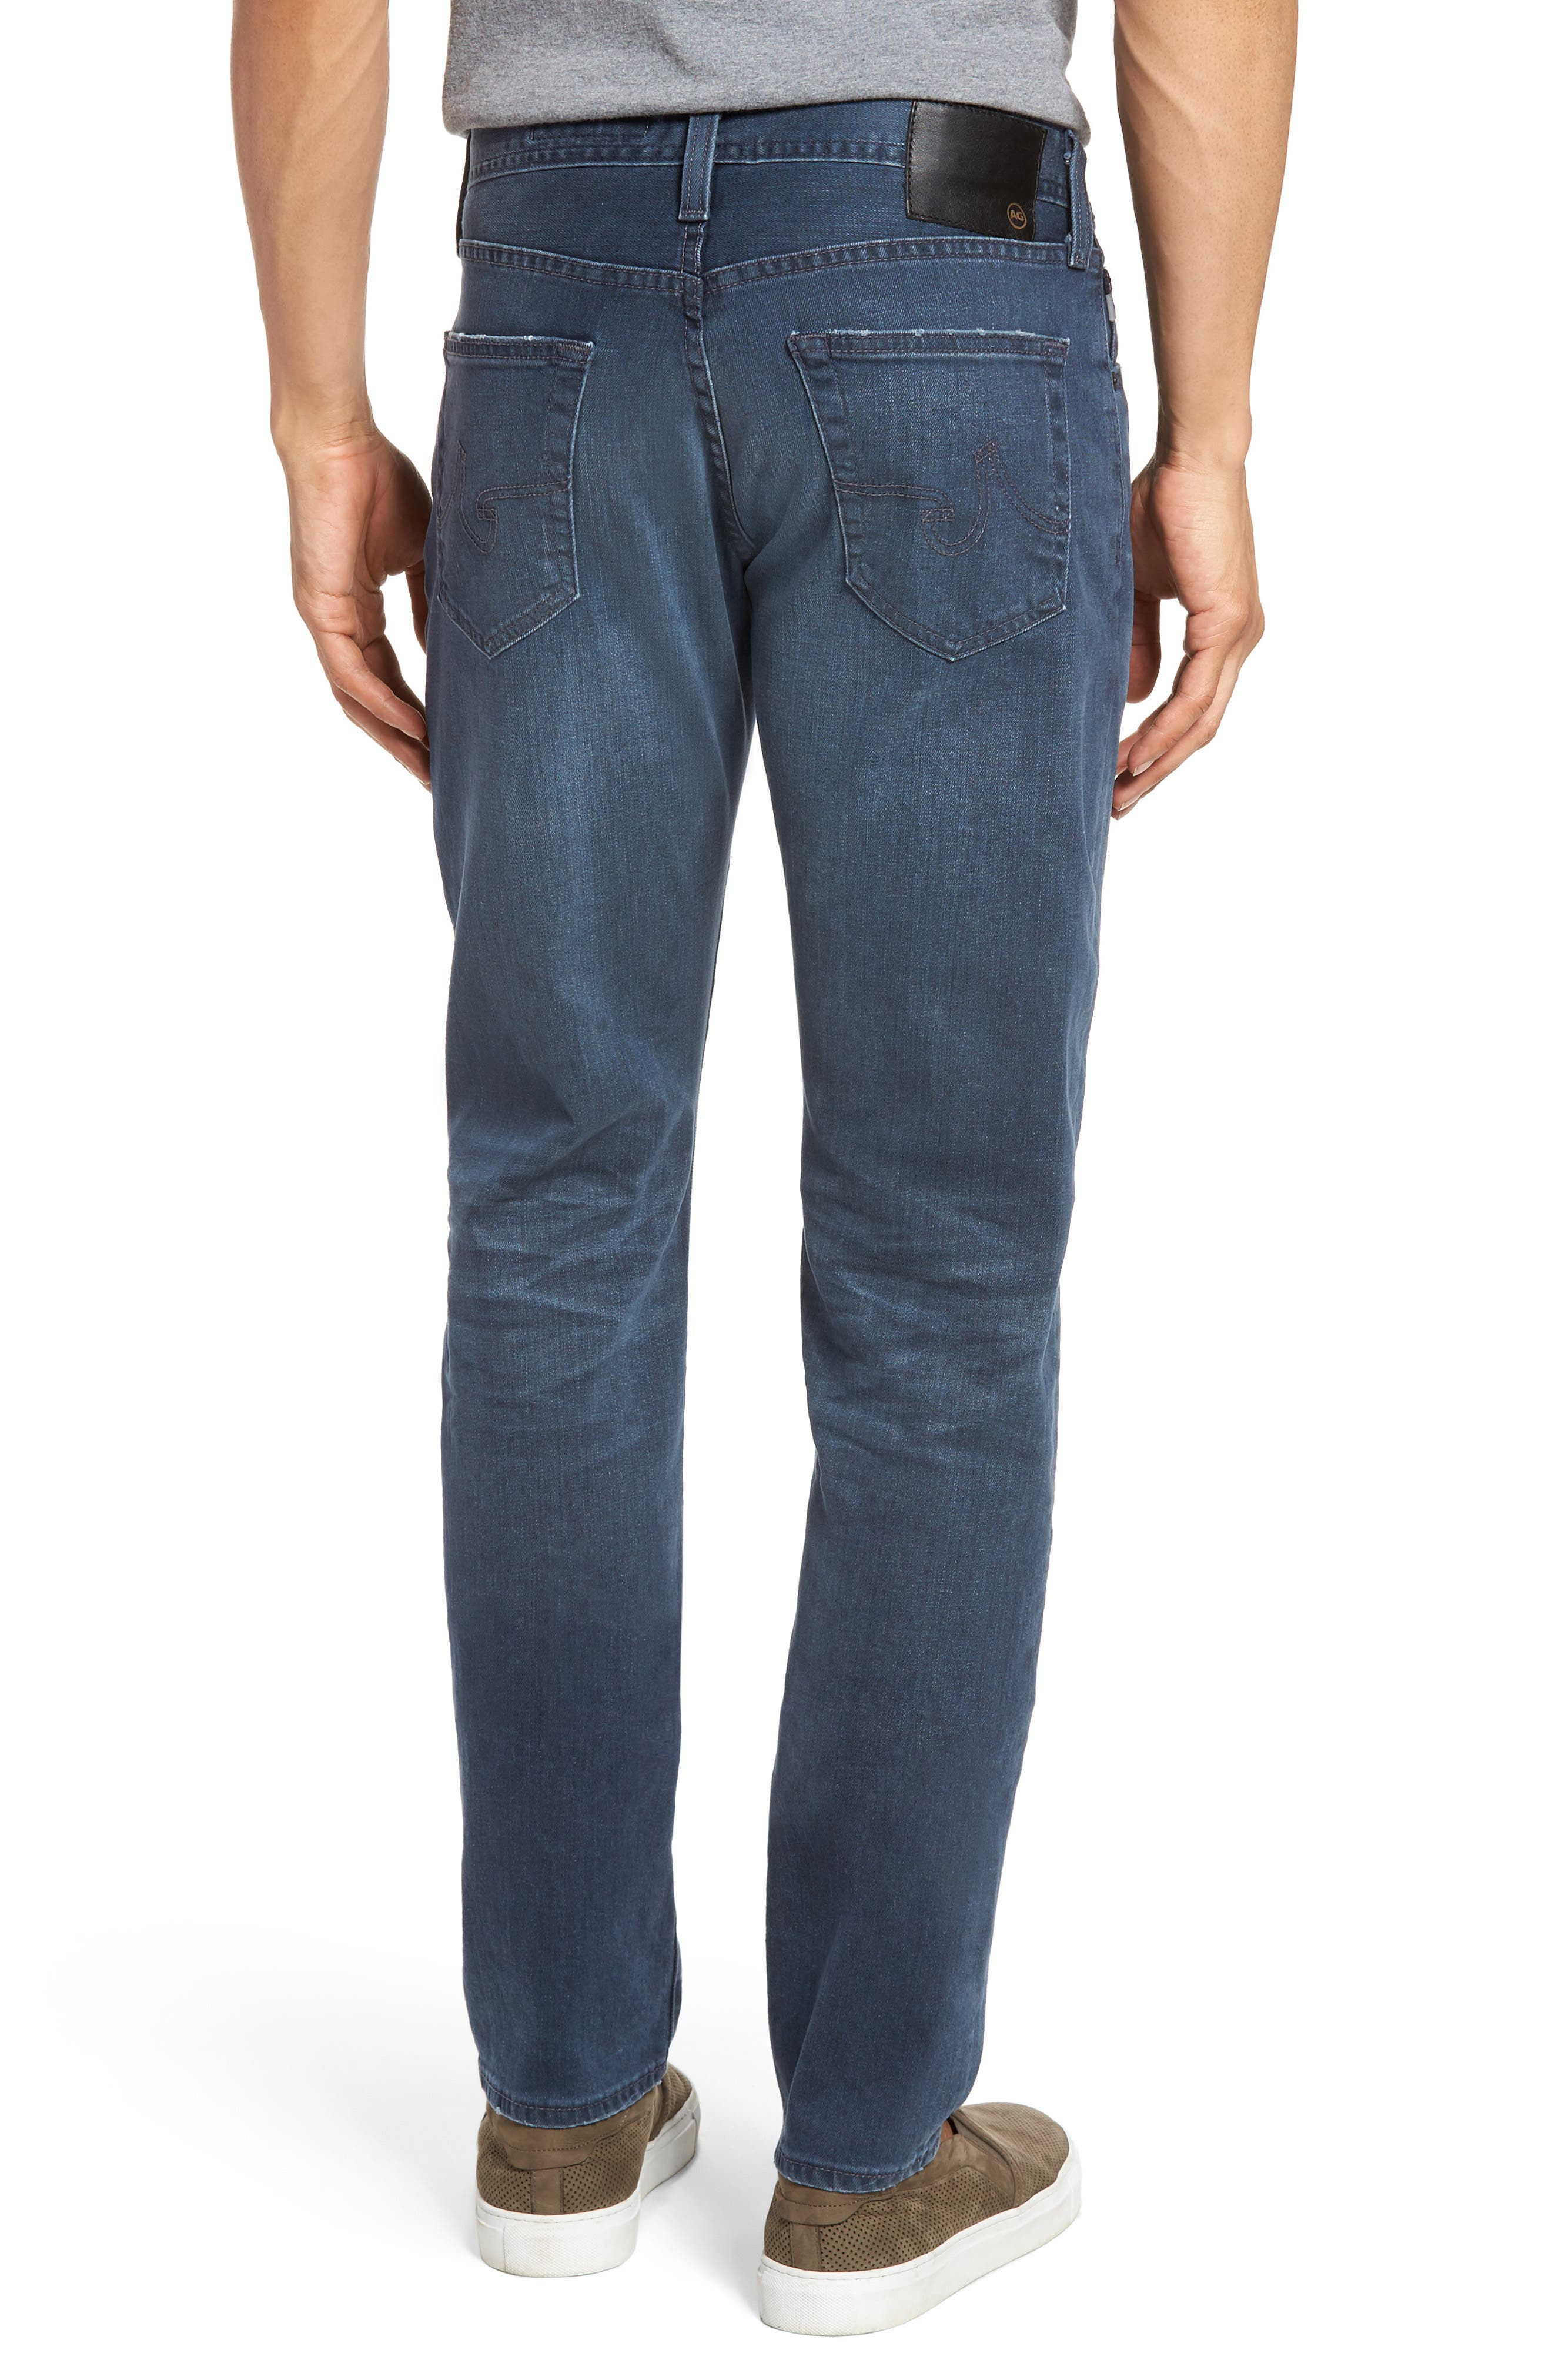 Graduate Slim Straight Leg Jeans,                             Alternate thumbnail 2, color,                             7 Years Blue Peril